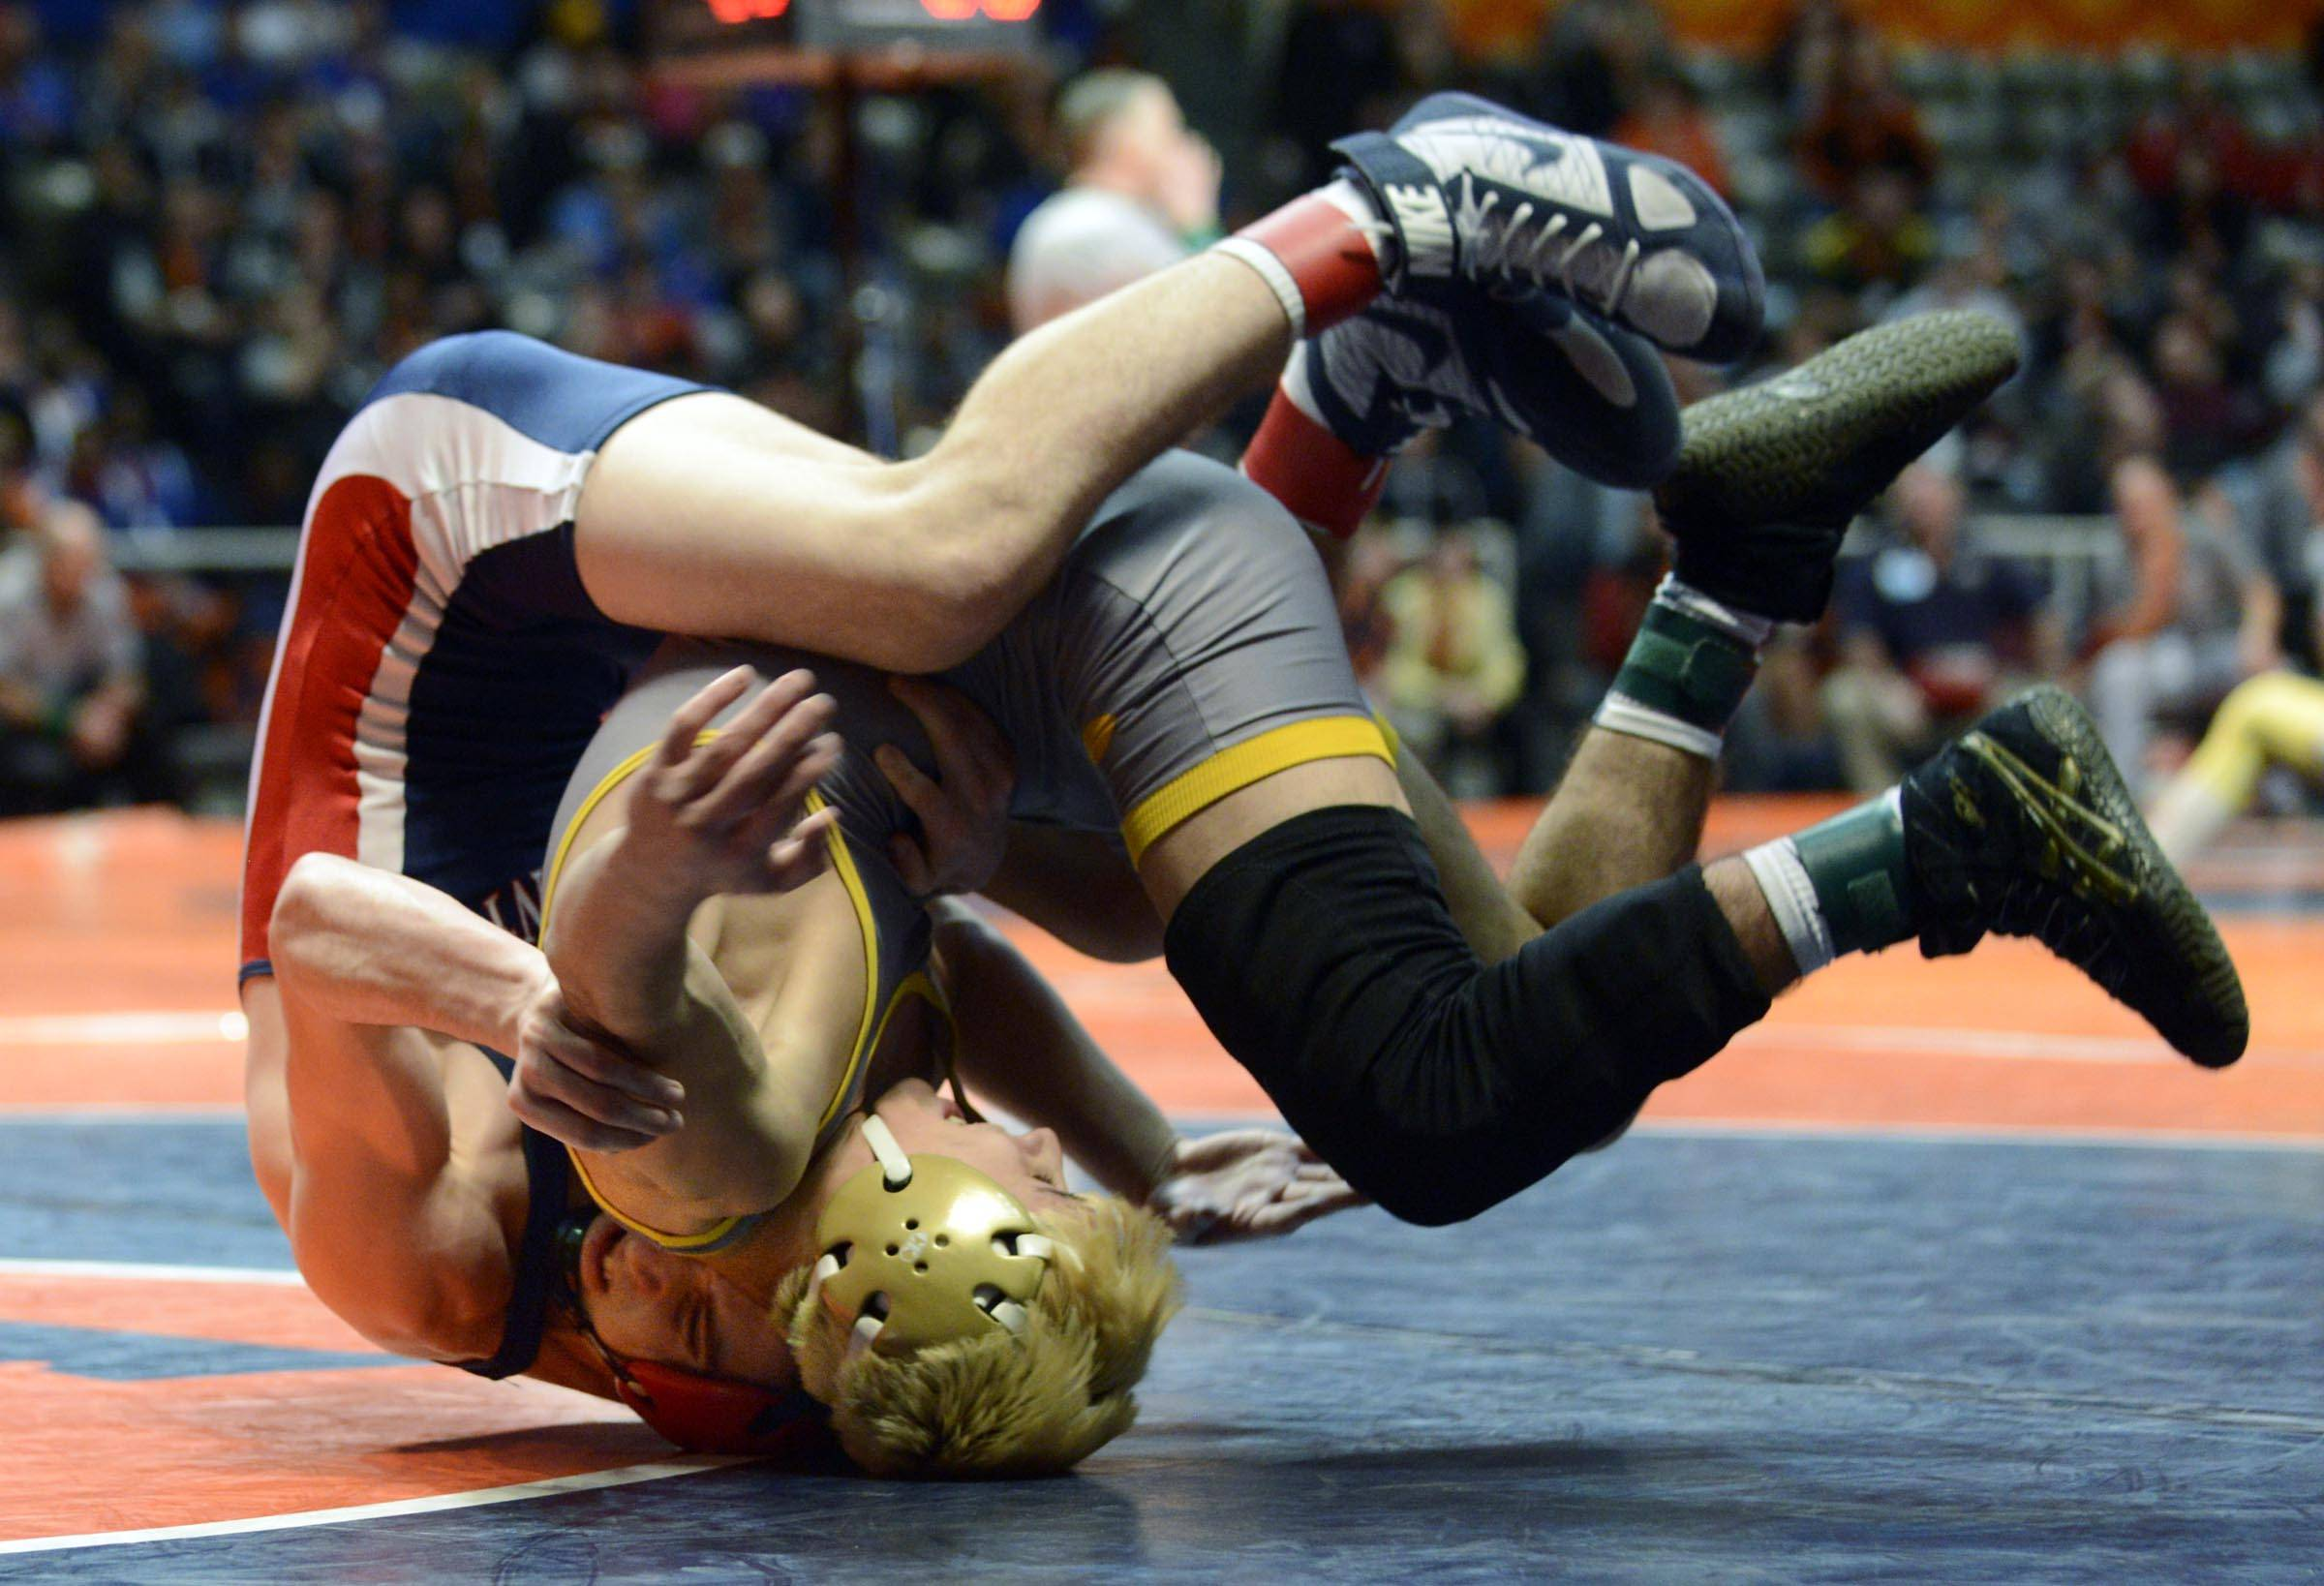 Bobby Alexander of Conant High School competes against Jered Cortez of Glenbard North High School Friday in the 132-pound weight class semifinals of the wrestling IHSA Class 3A state tournament at State Farm Center in Champaign.